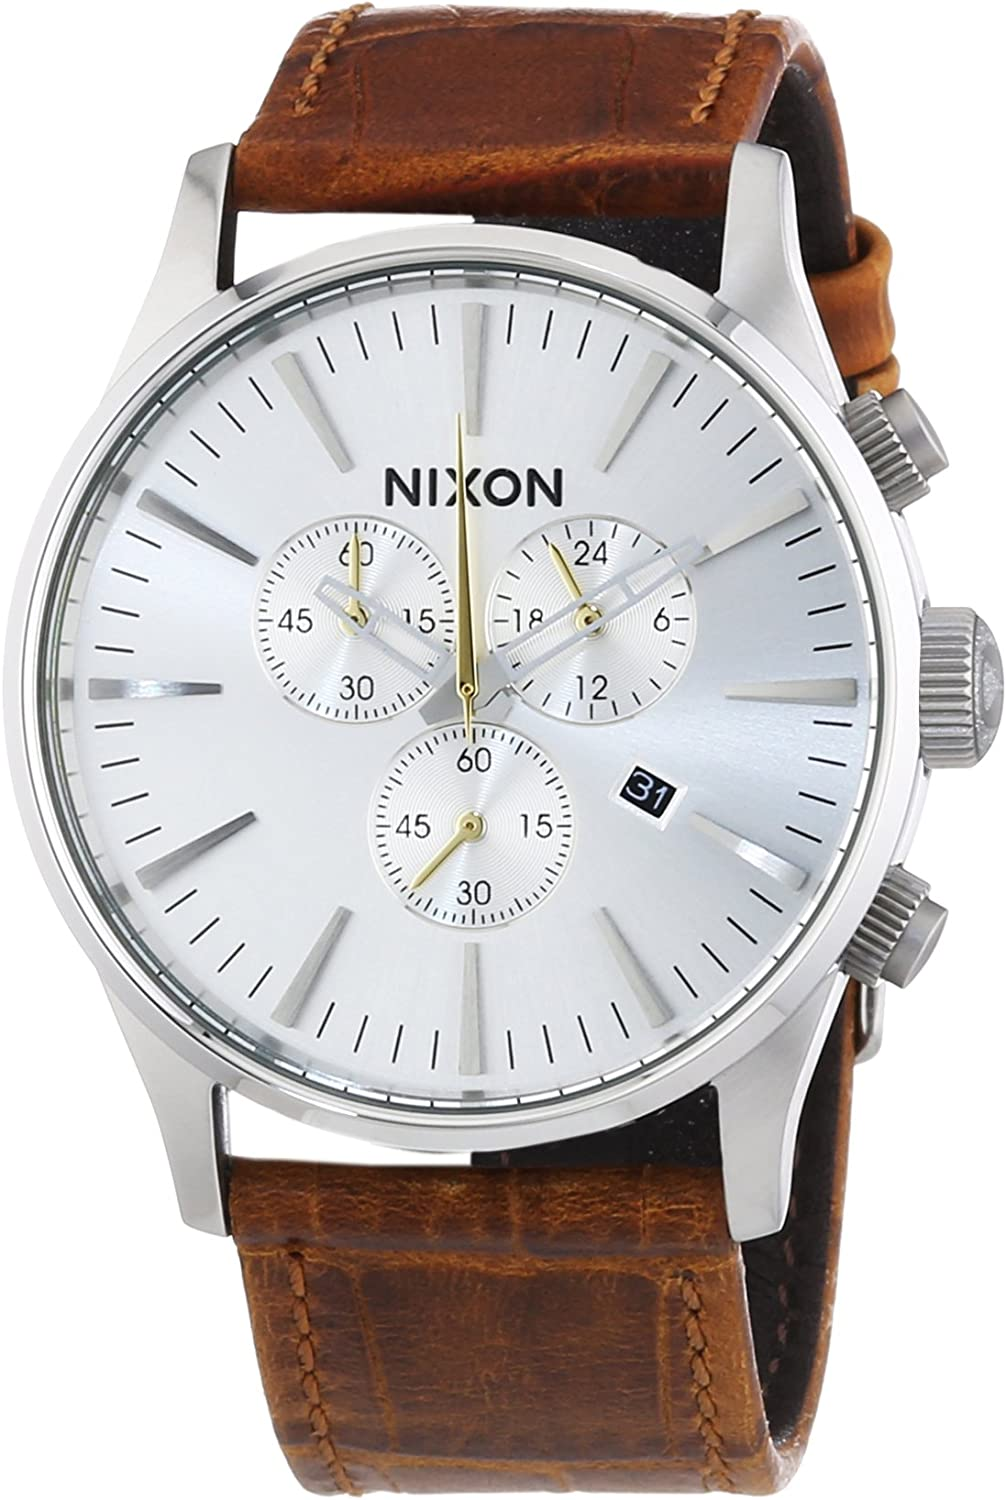 NIXON Men s Sentry Quartz Stainless Steel and Leather Casual Watch, Color Brown Silver dial Model A405-1888